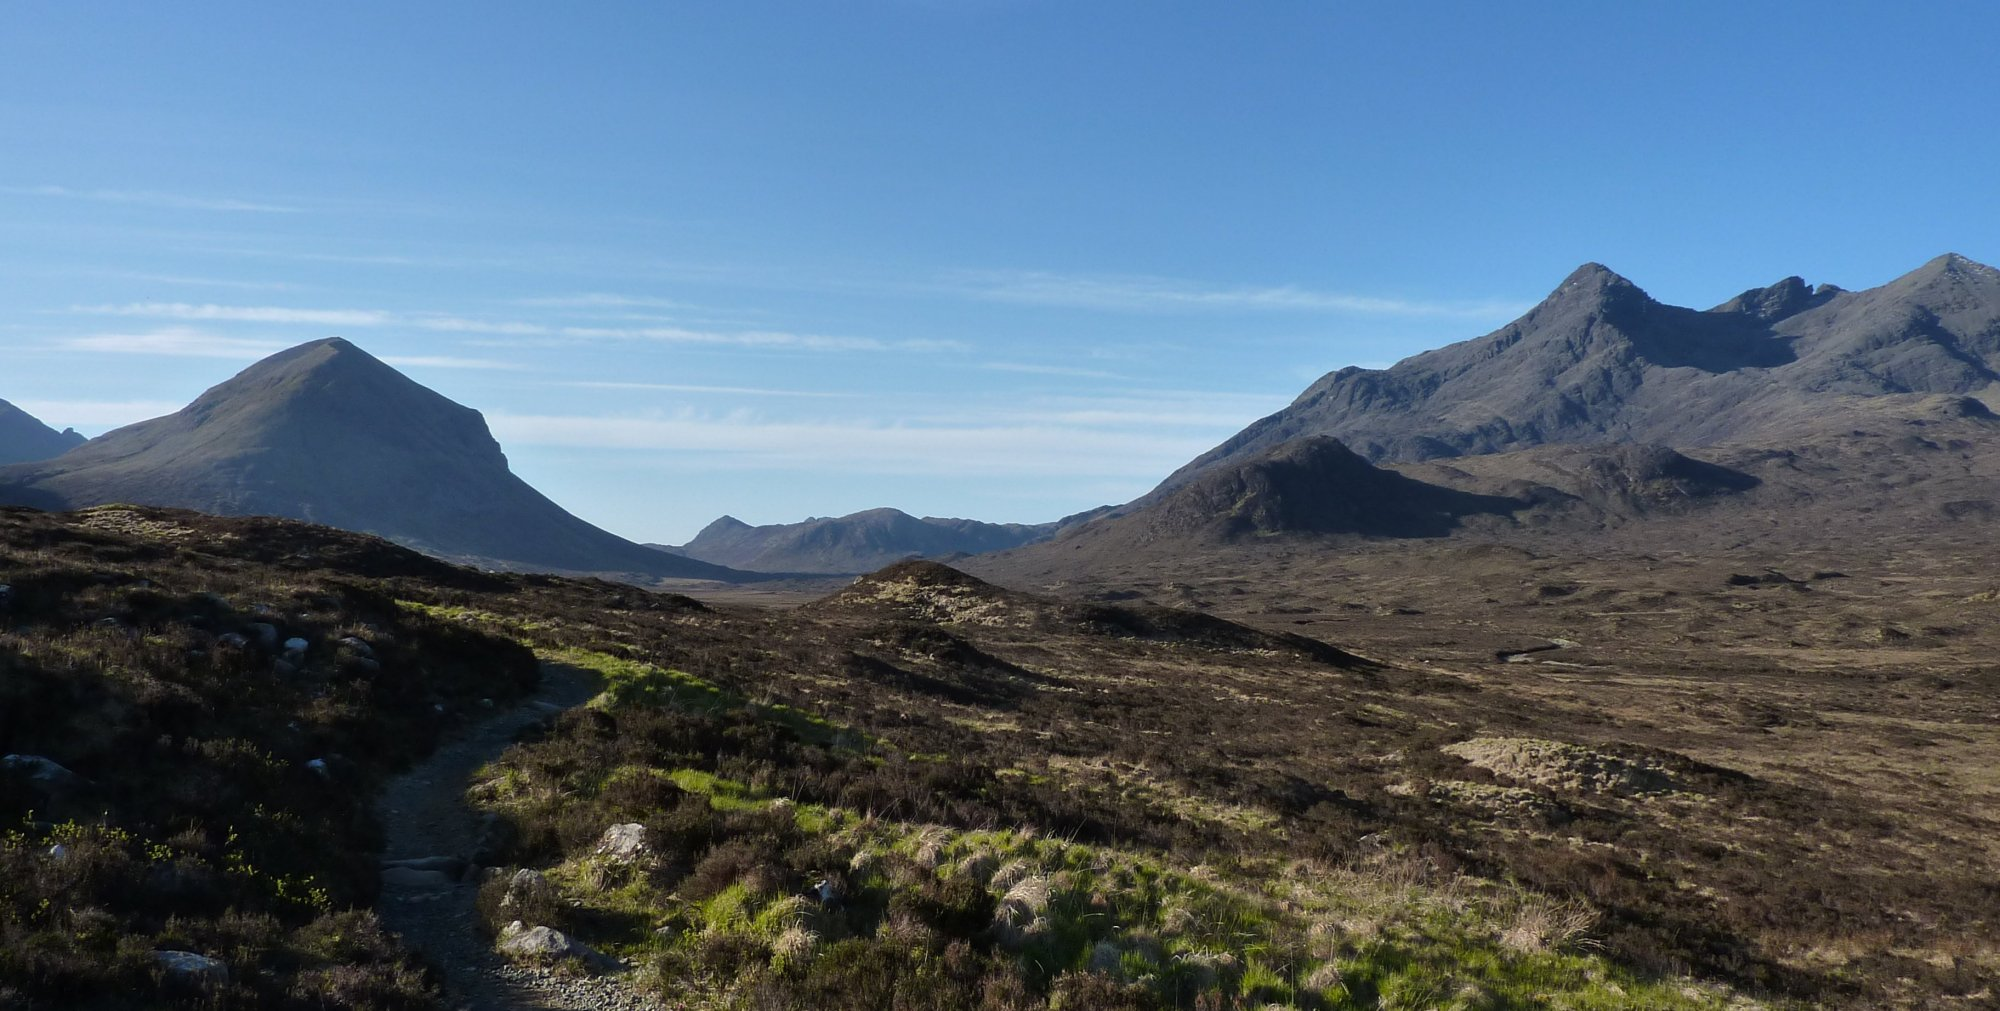 It's a beautiful warm, early morning, heading into the glen with Marsco to the left and the Cuillins to the right